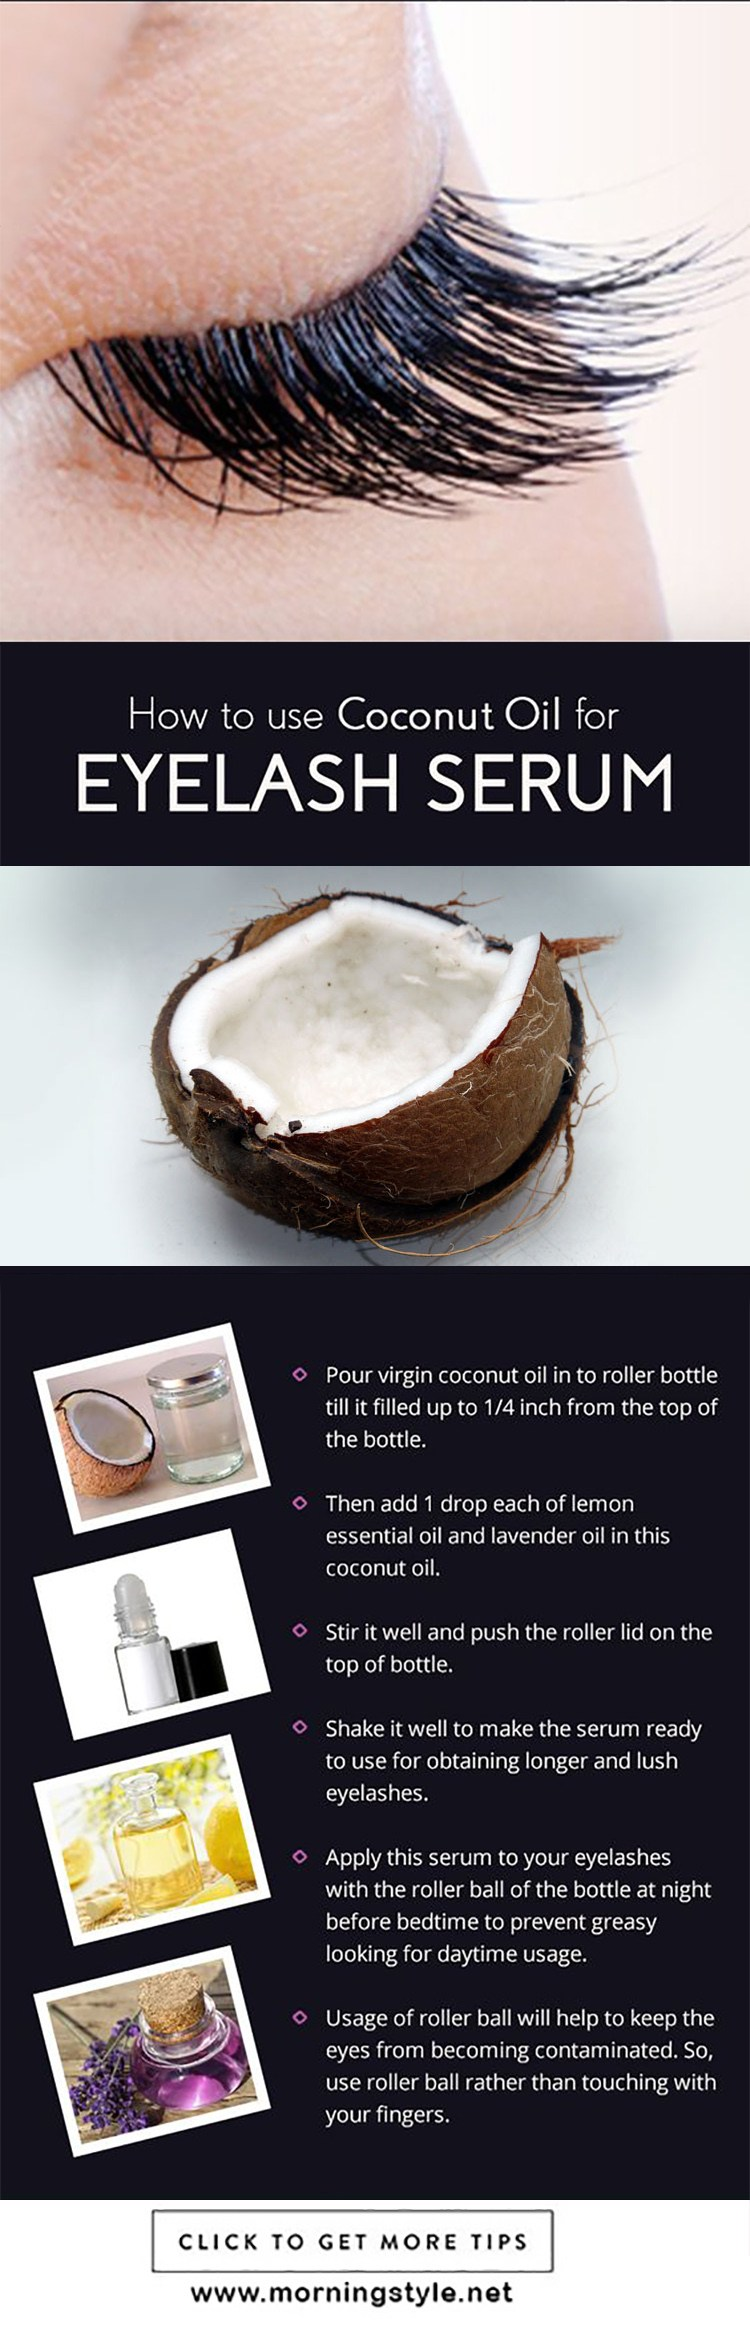 Coconut oil for eyelashes benefits and how to use it